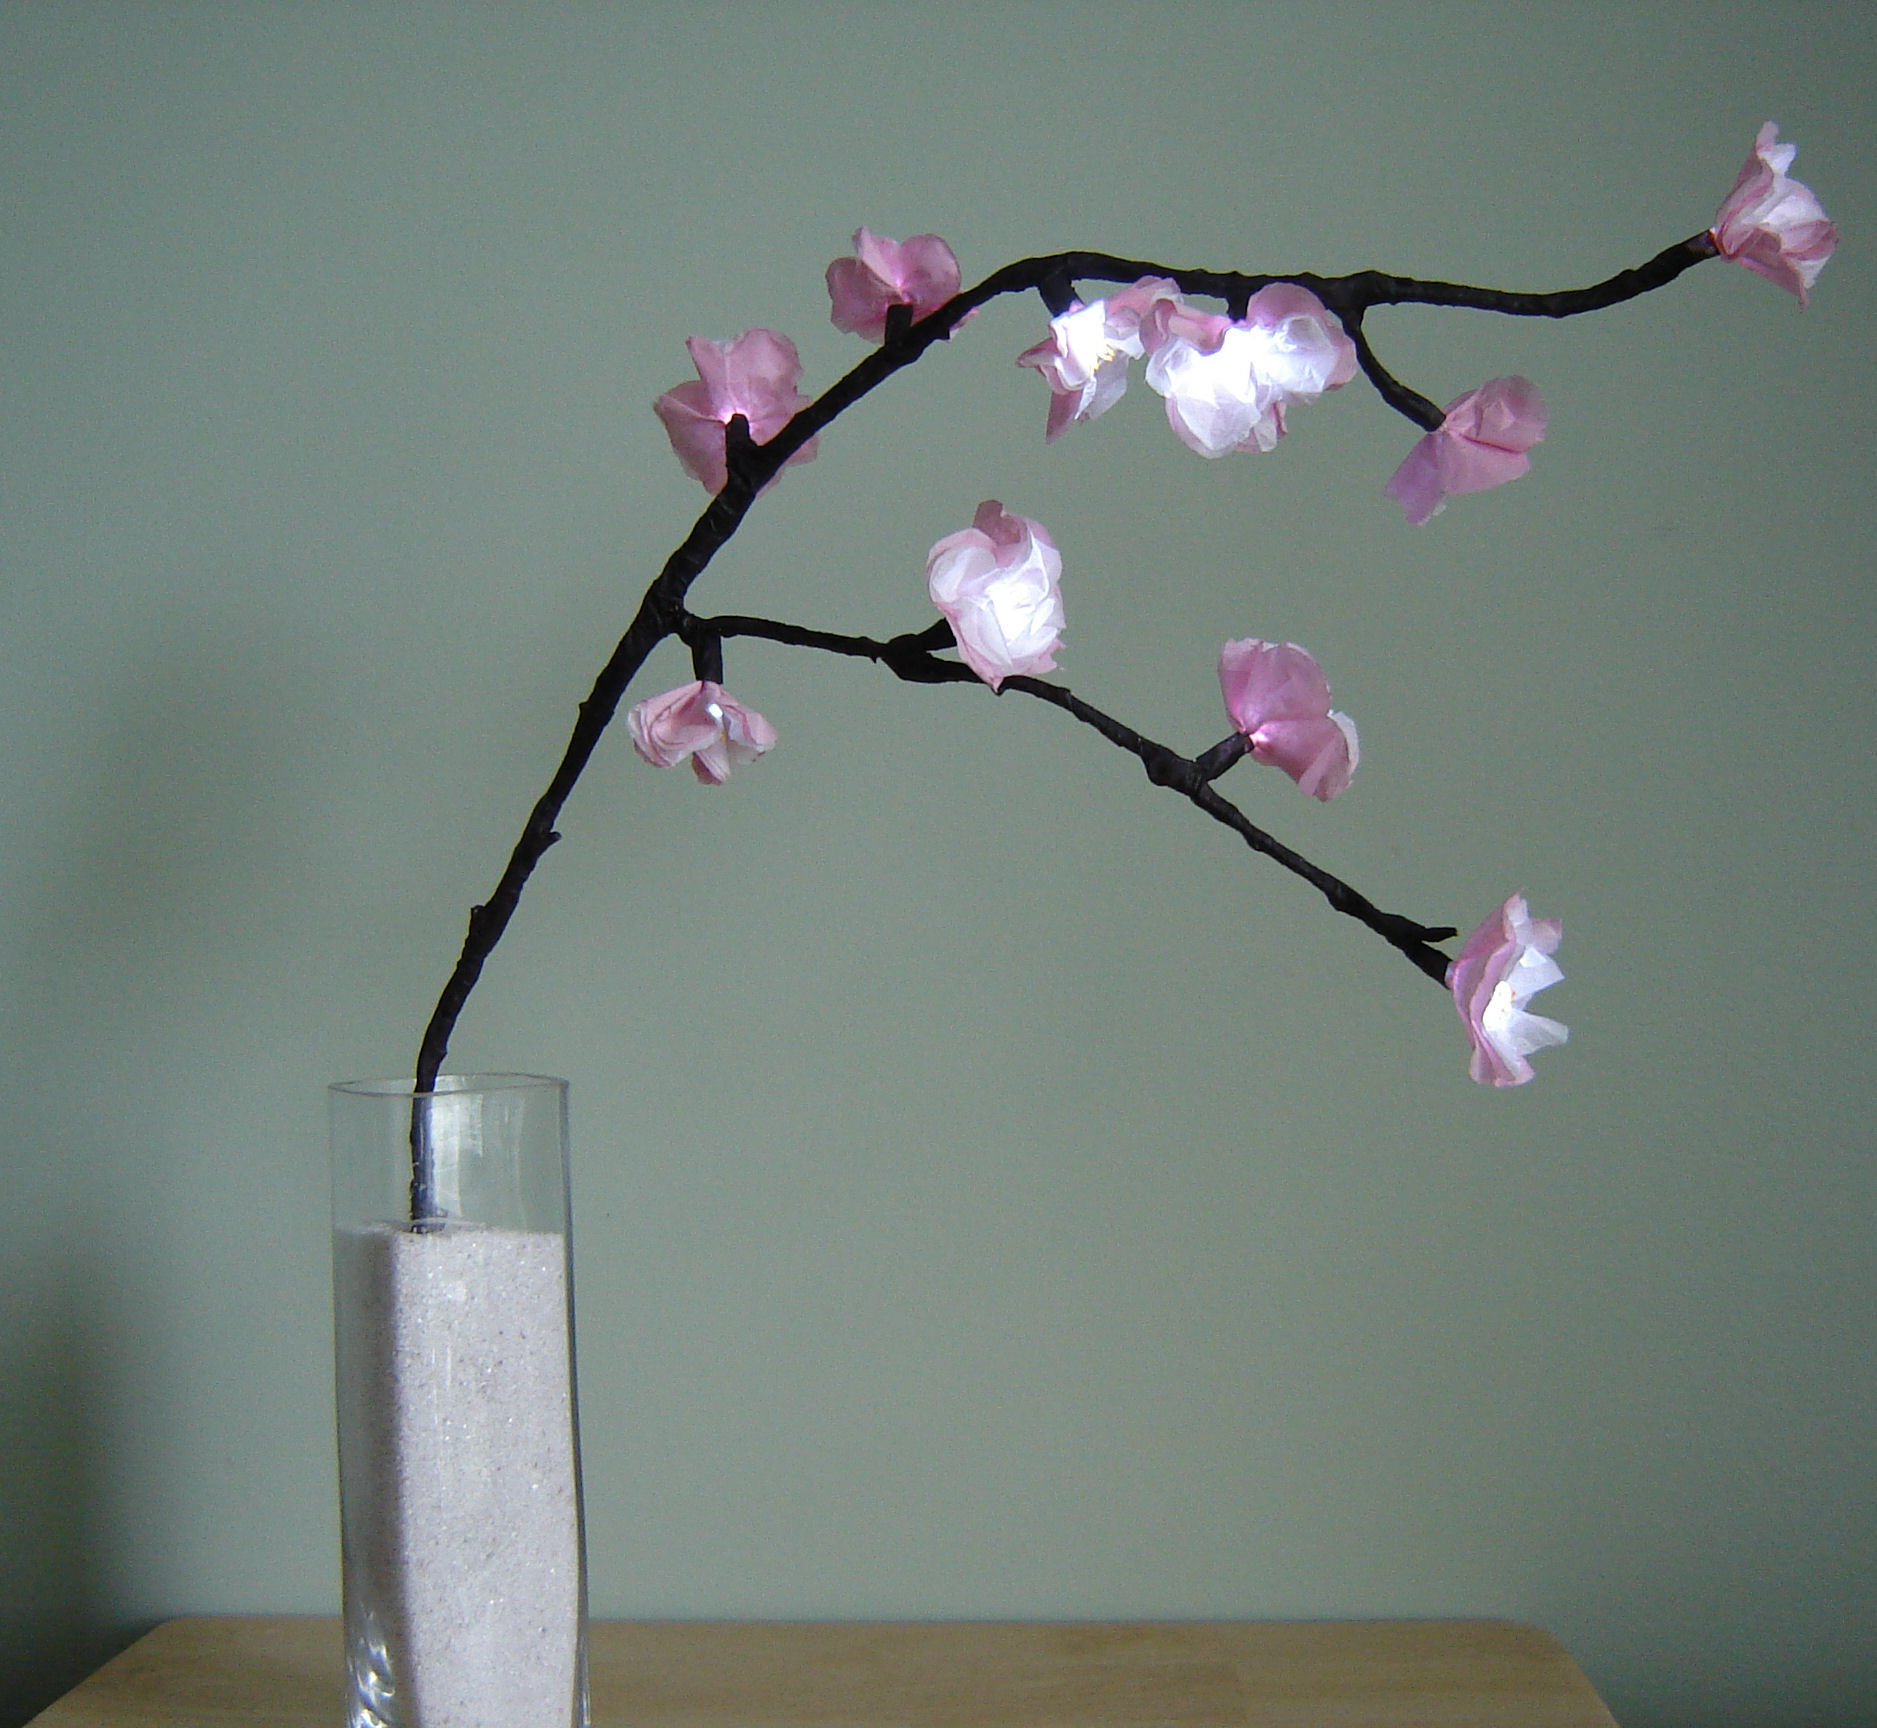 Picture of How to Make Cherry Blossom Lights